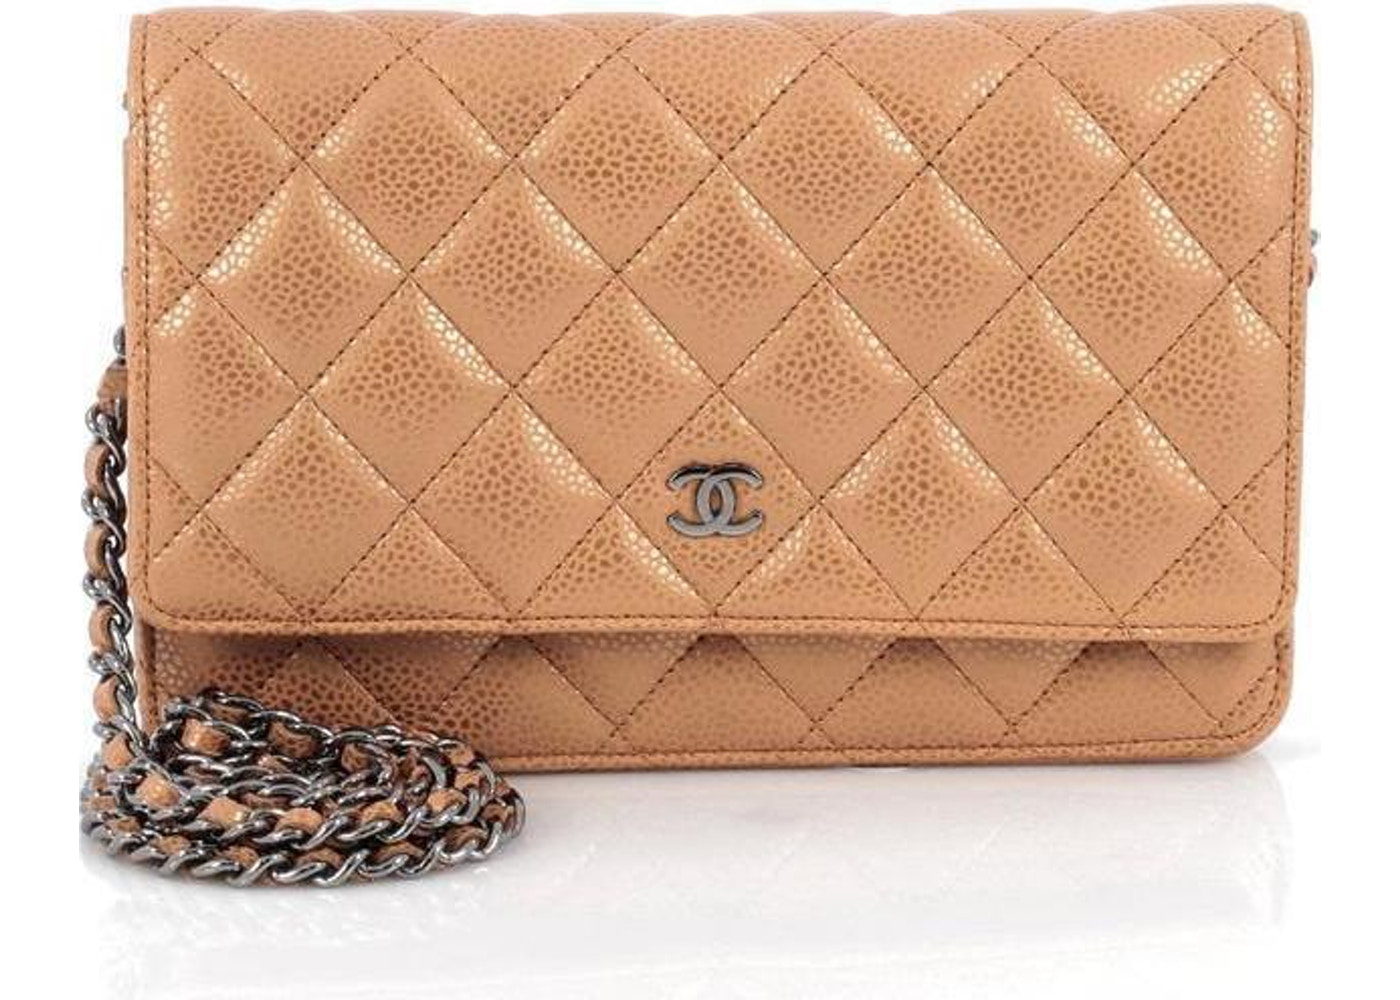 a7556e93ab33 Buy   Sell Chanel WOC Handbags - Price Premium